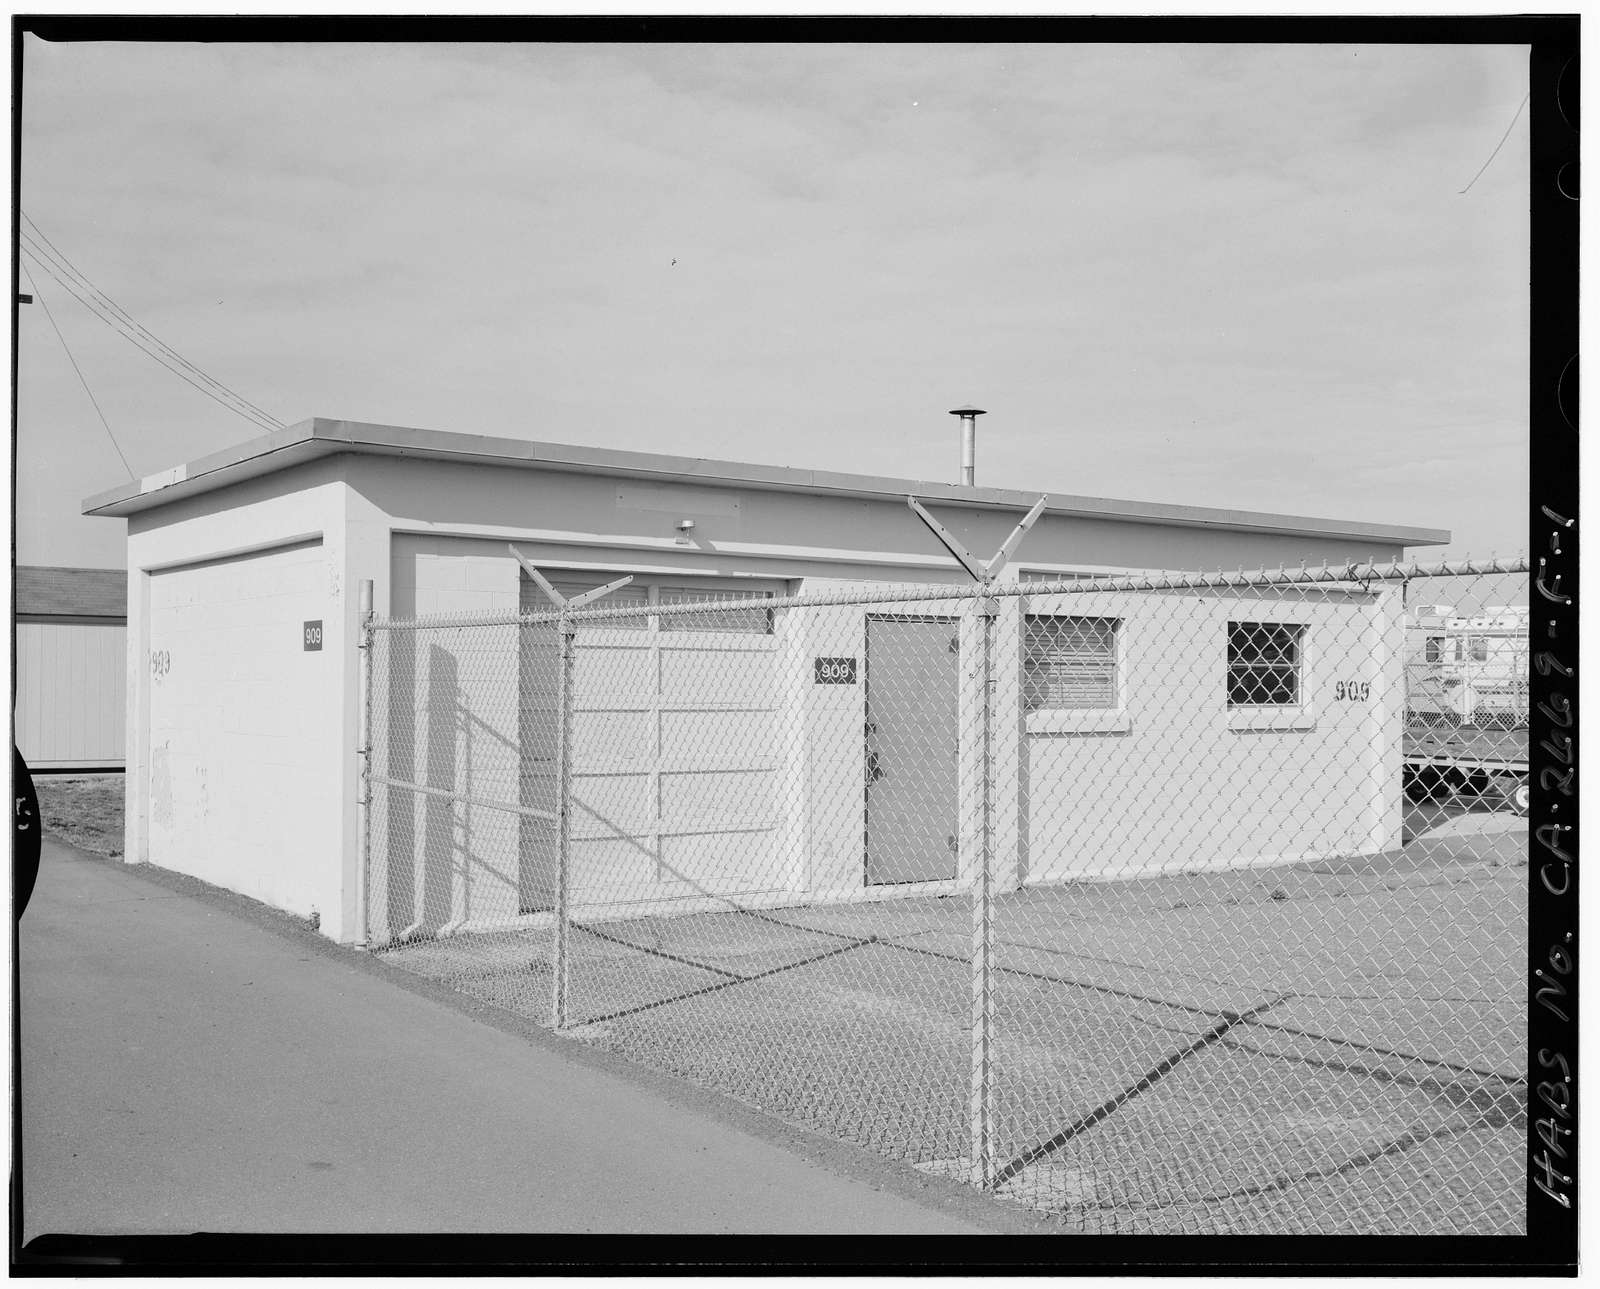 Travis Air Force Base, Handling Crew Building, North of W Street, Armed Forces Special Weapons Project Q Area, Fairfield, Solano County, CA